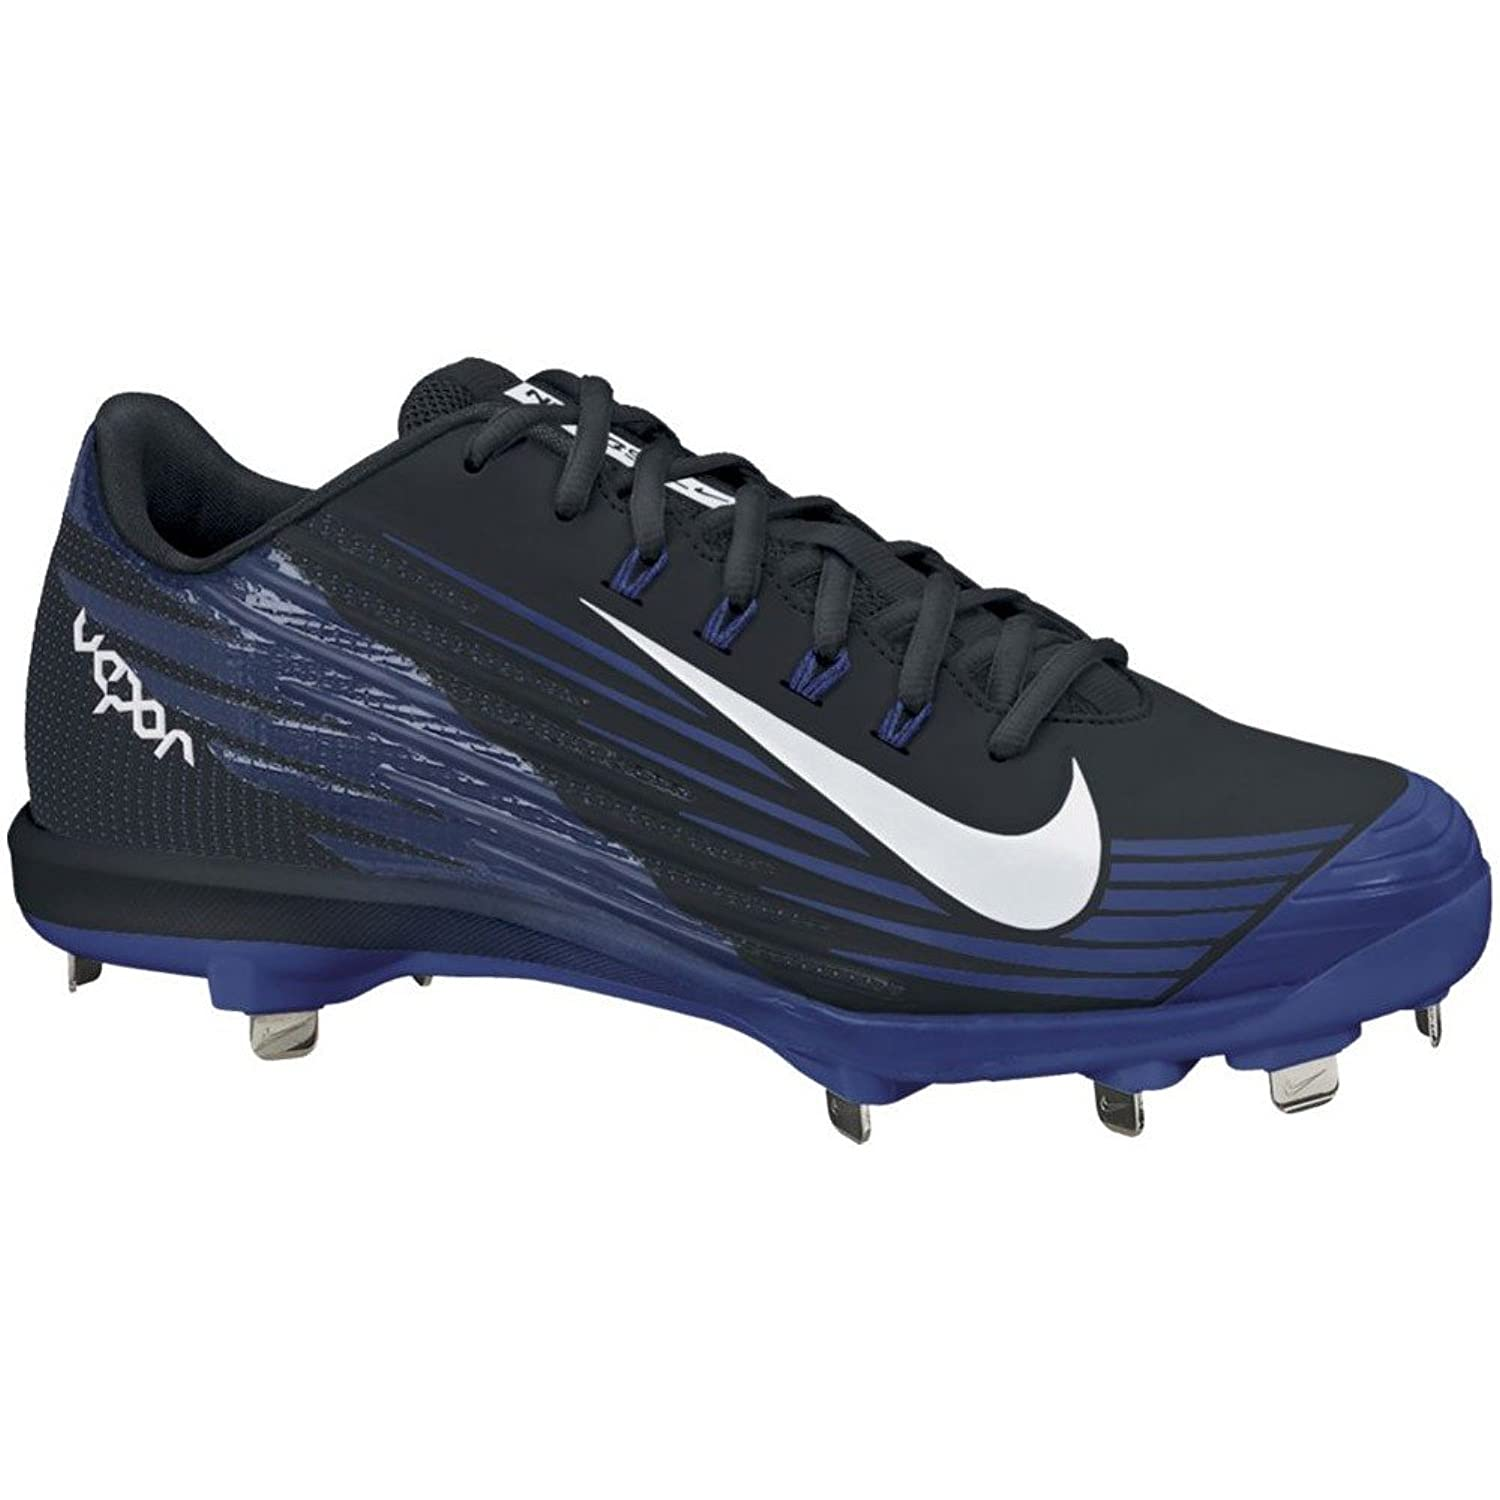 Nike Lunar Vapor Pro Metal Cleats Sz 13.5 BLACK/RUSH BLUE//WHITE